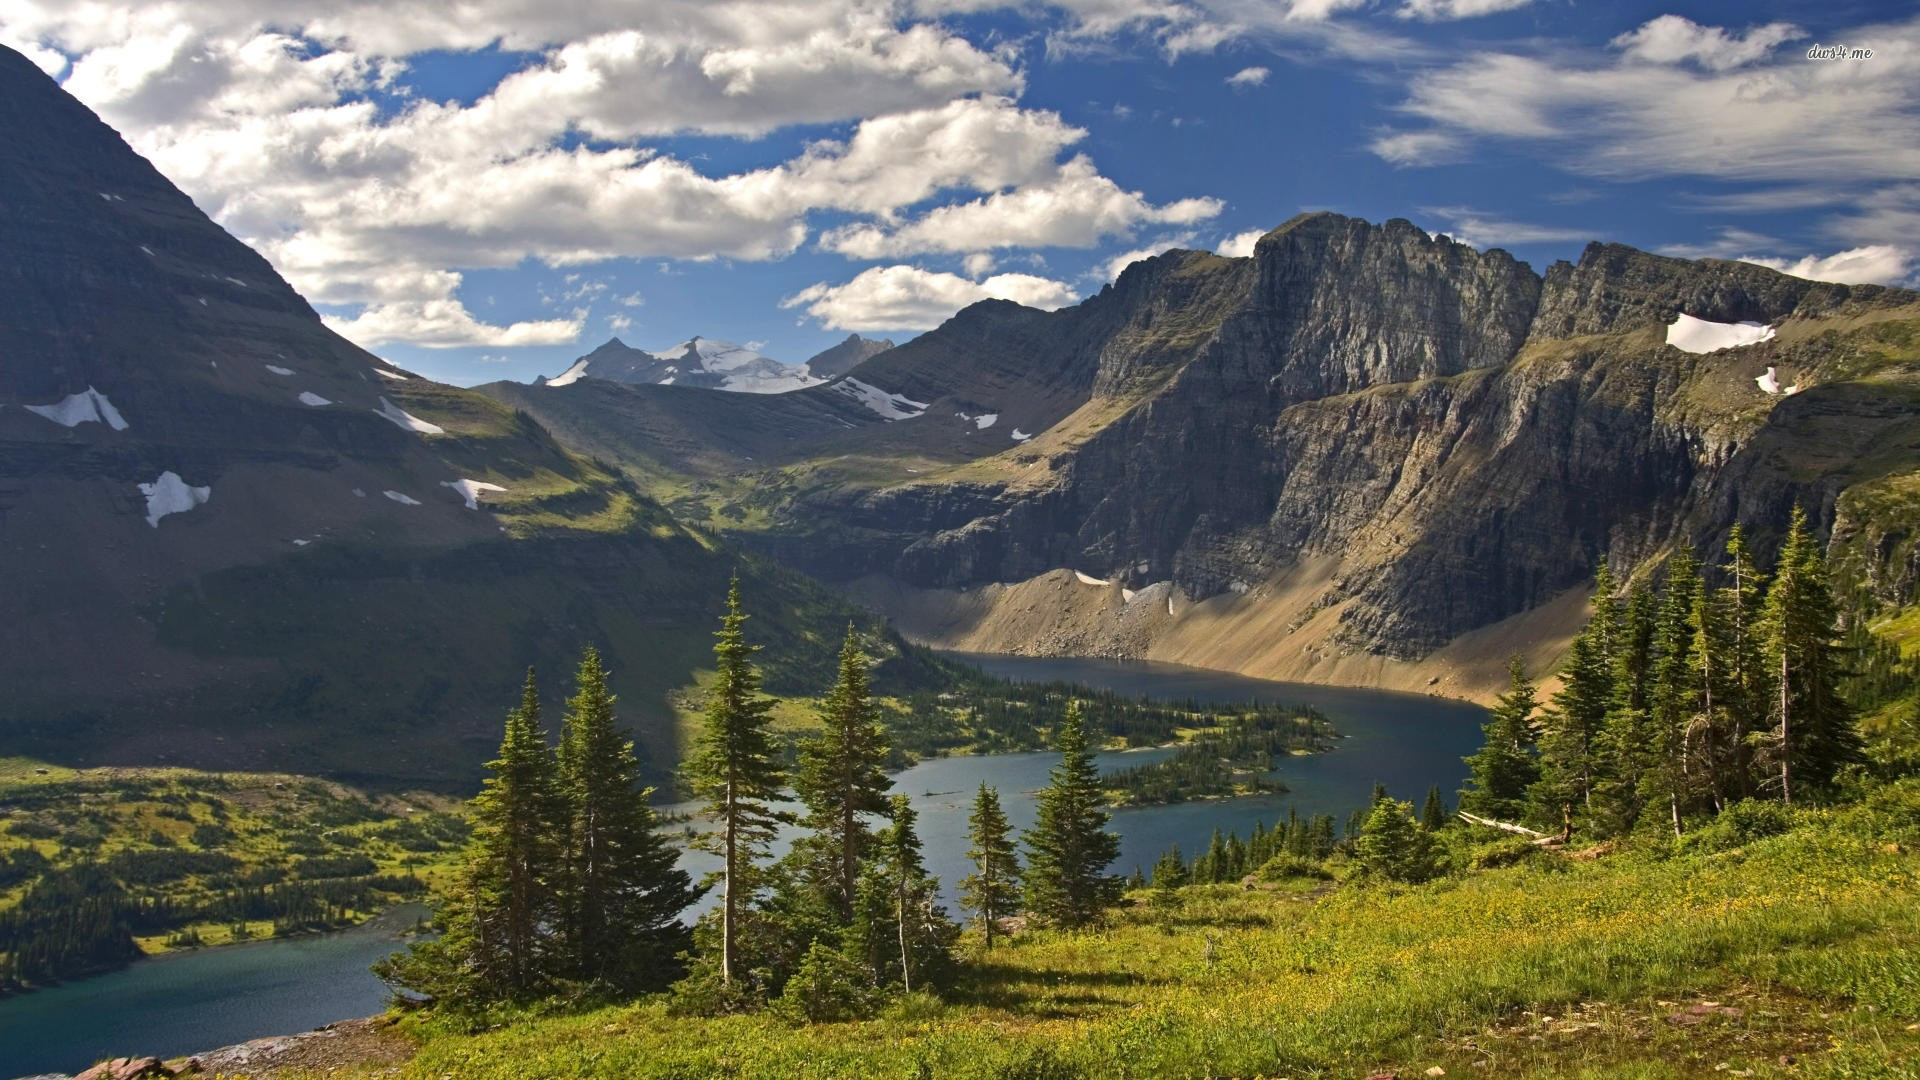 Glacier National Park wallpapers 52233 Nature Photography Wallpapers 1920x1080